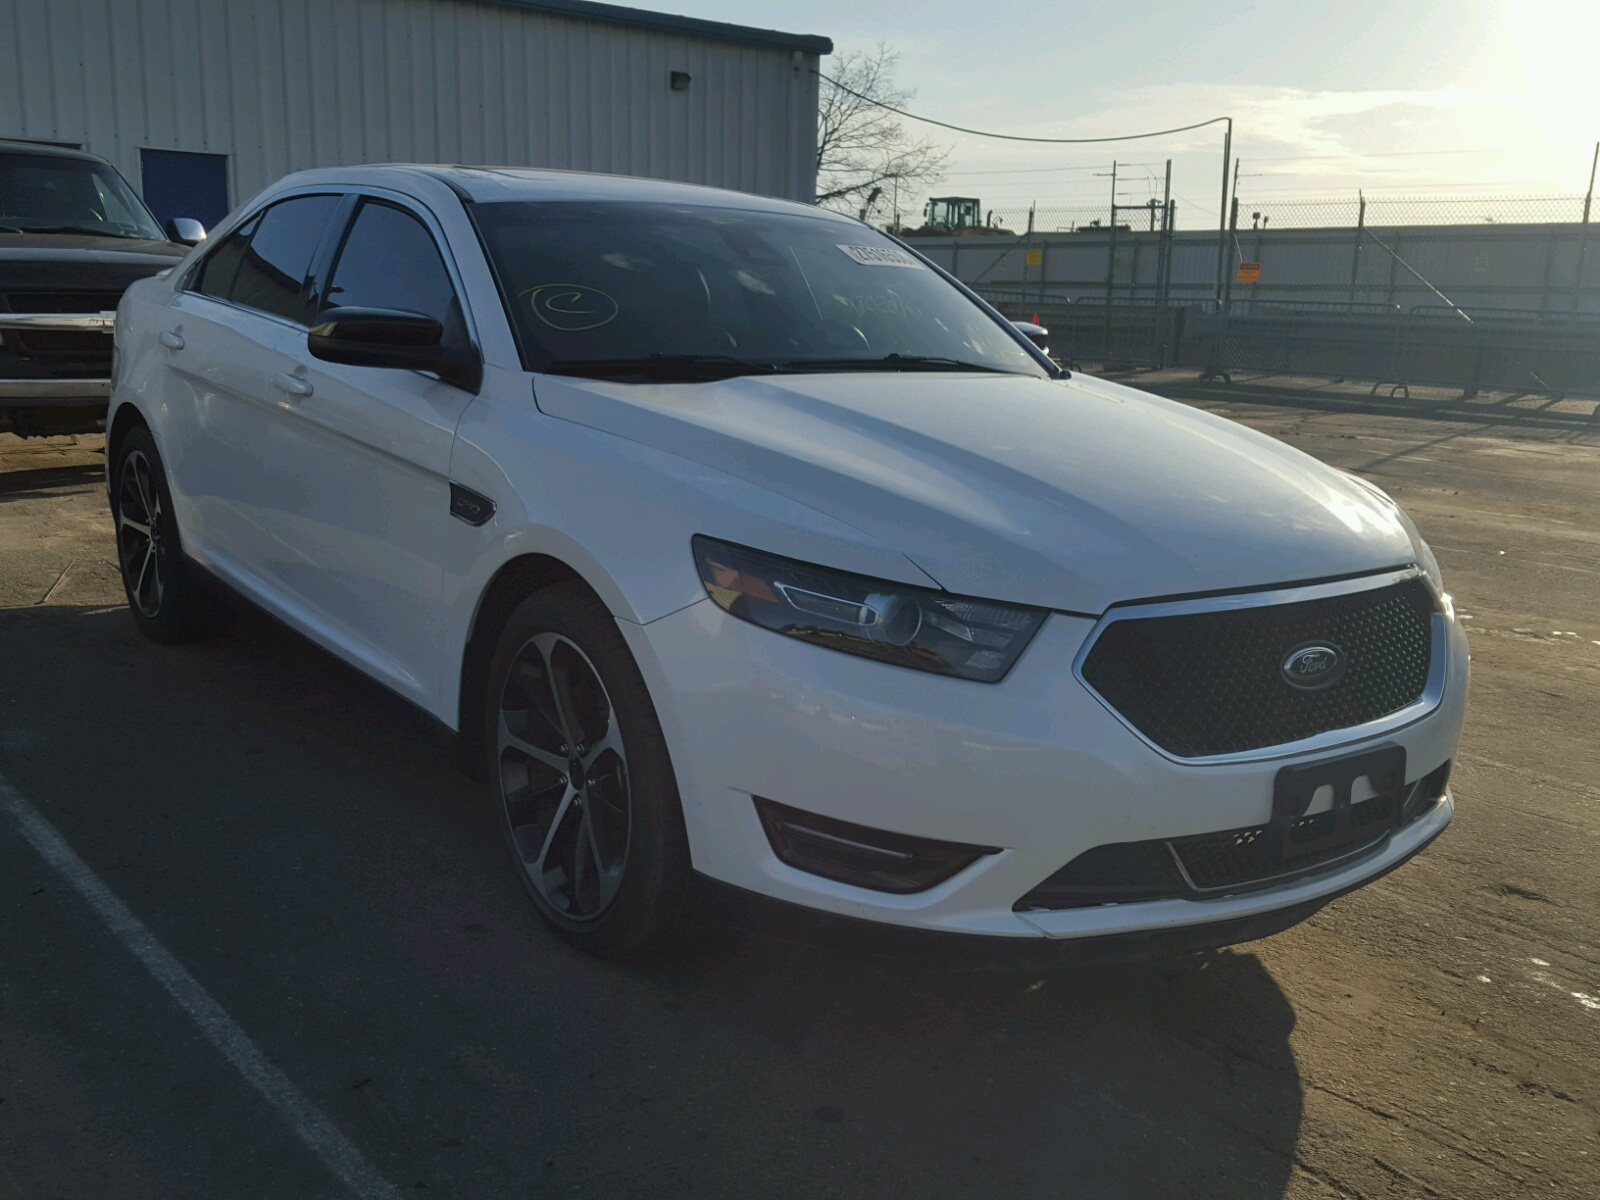 2014 ford taurus sho for sale at copart brookhaven ny lot 27516508. Black Bedroom Furniture Sets. Home Design Ideas